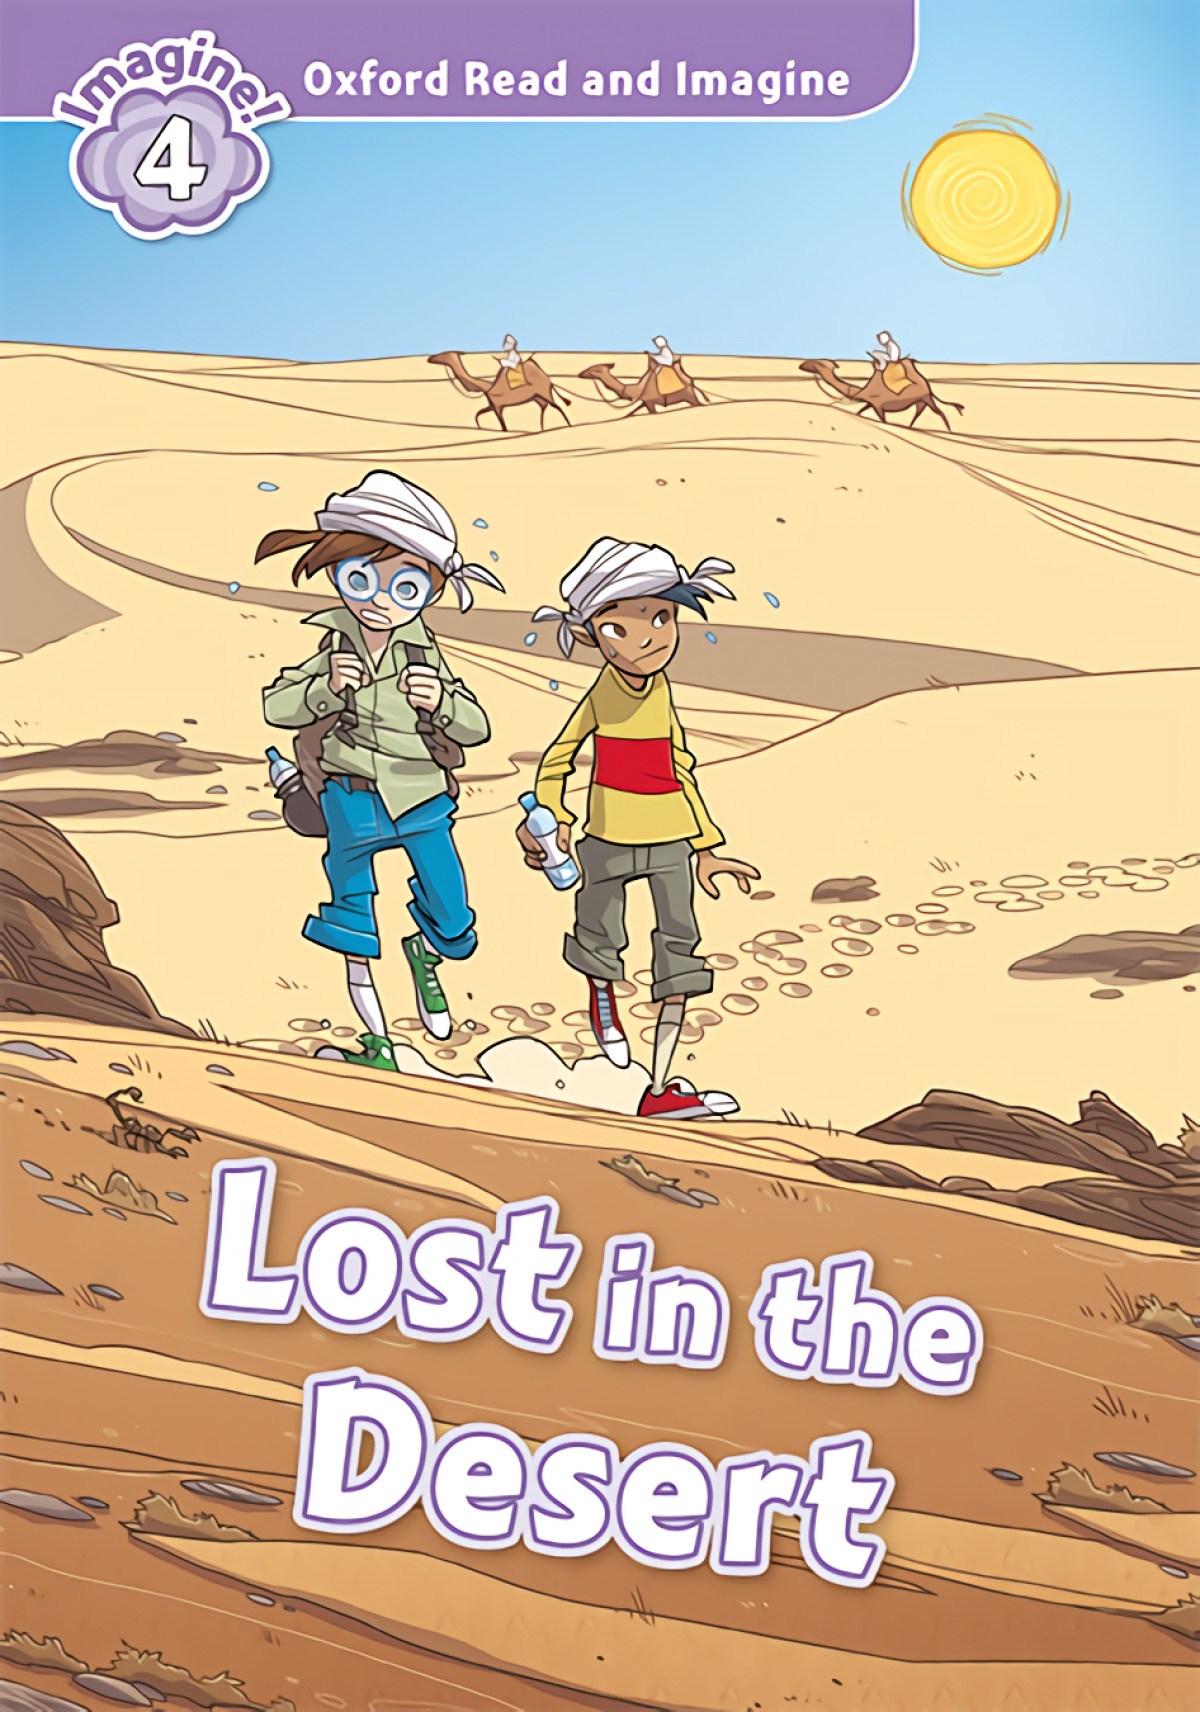 Oxford Read and Imagine 4. Lost in the Desert MP3 Pack